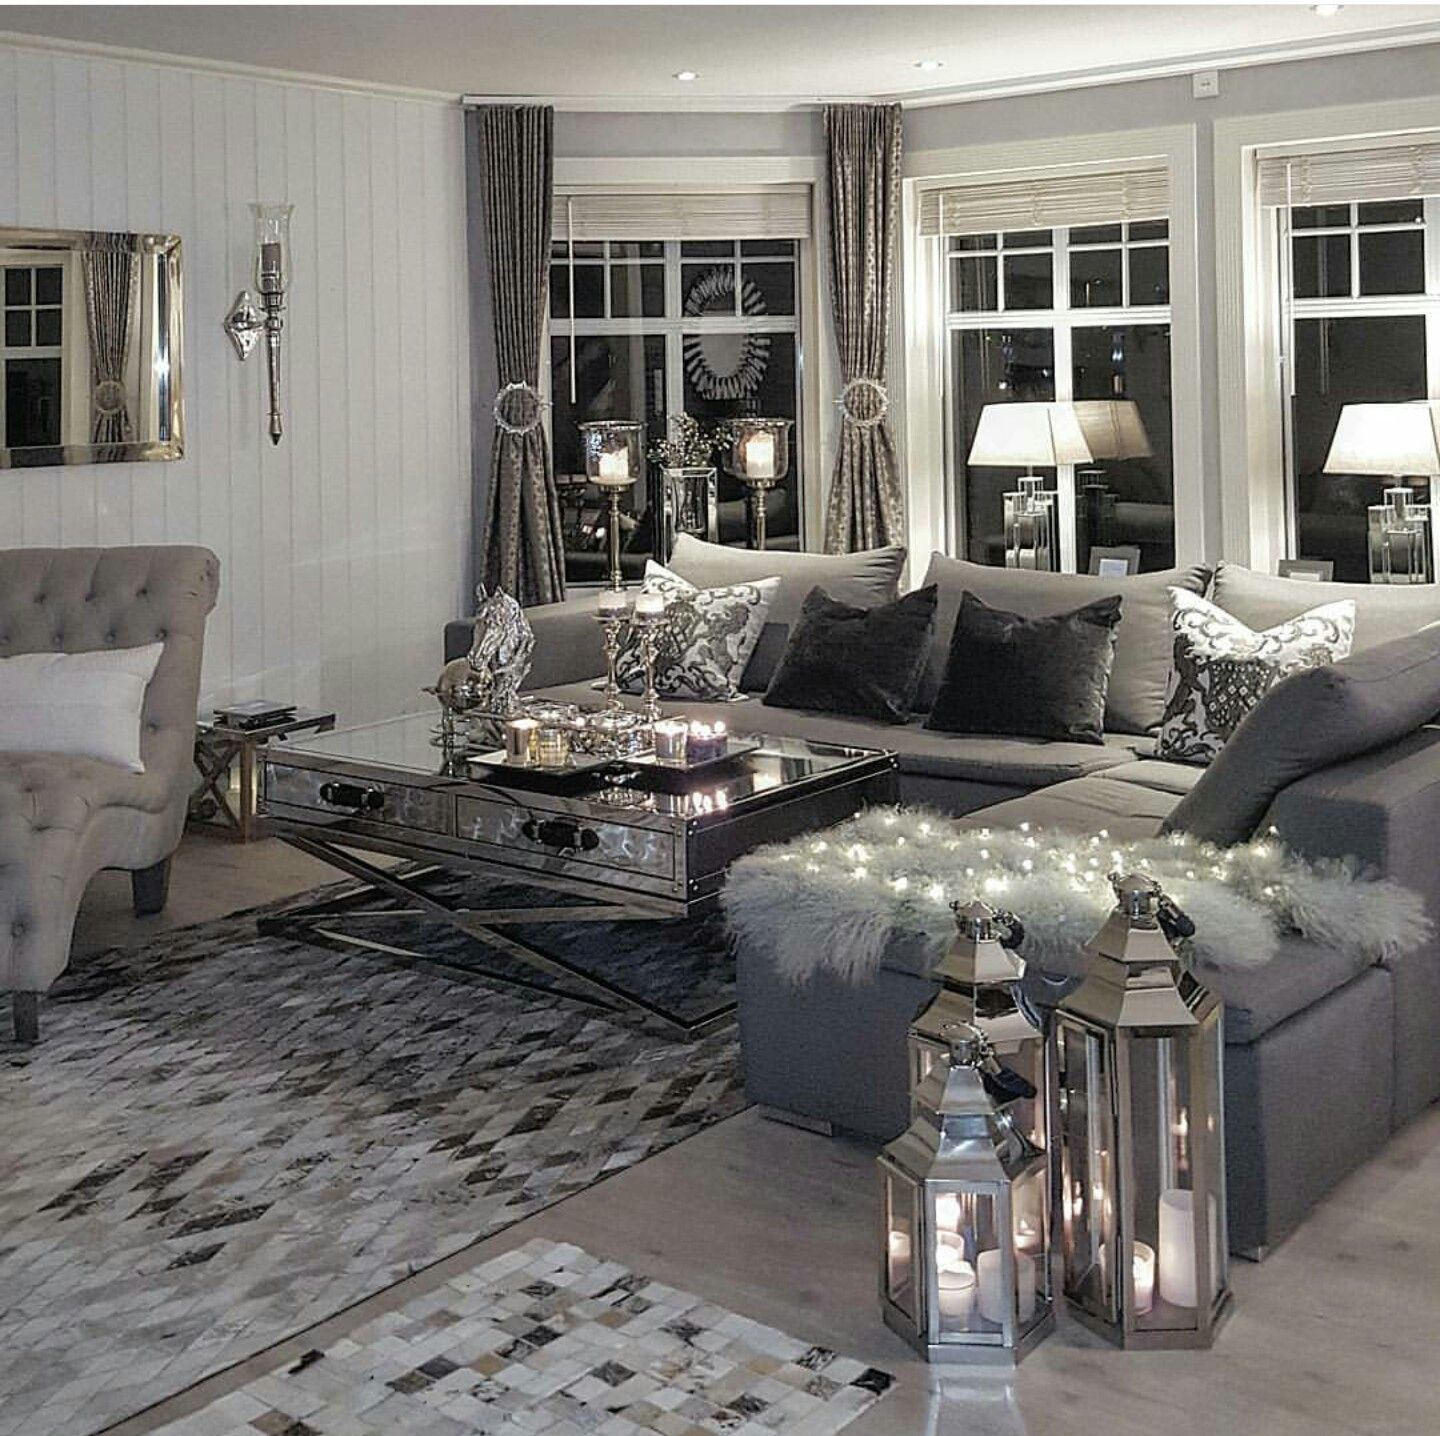 8 Gorgeous Rustic Living Room Ideas That Will Melt Your Heart With Warmth Glam Living Room Rustic Living Room Living Room Grey